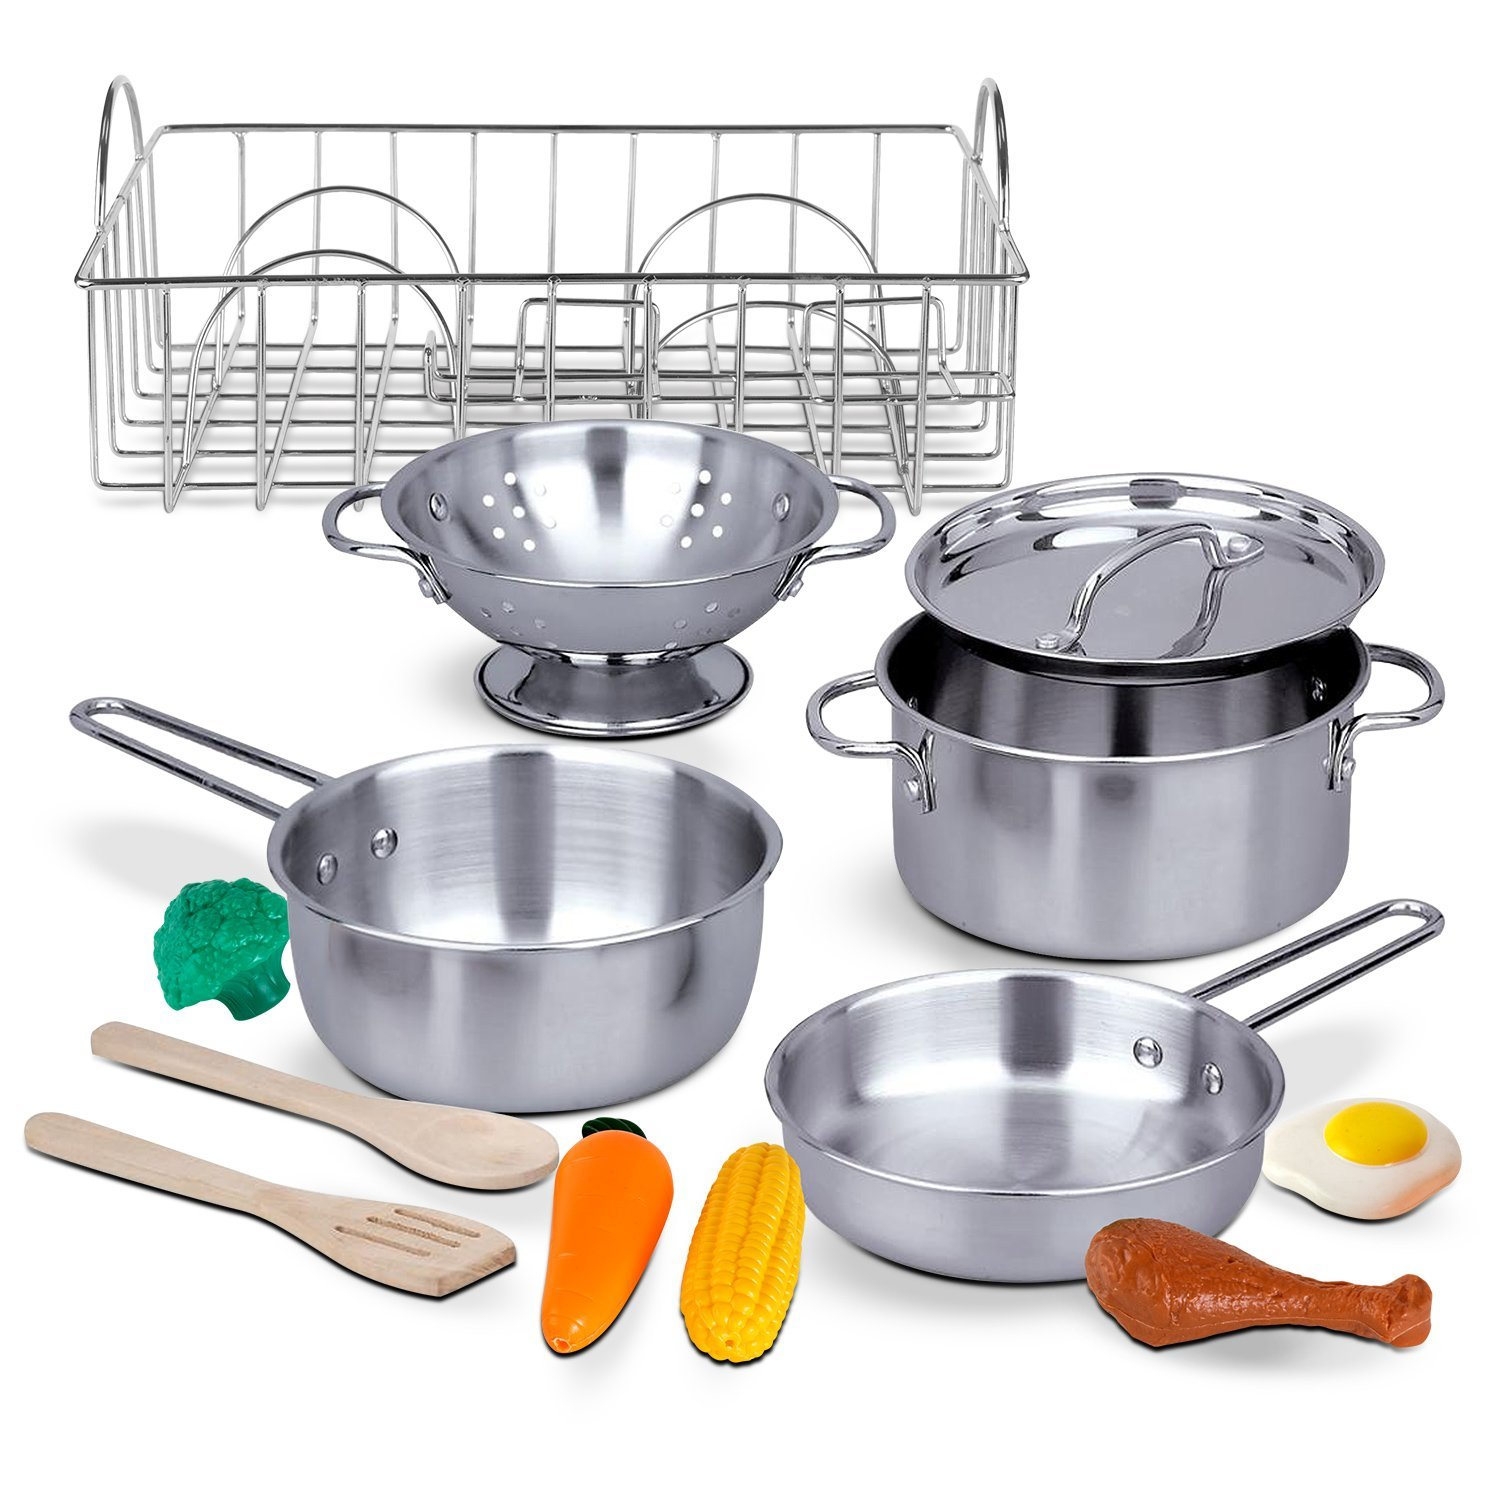 Kidzlane Stainless Steel Play Pots and Pans with Drainer and Play ...